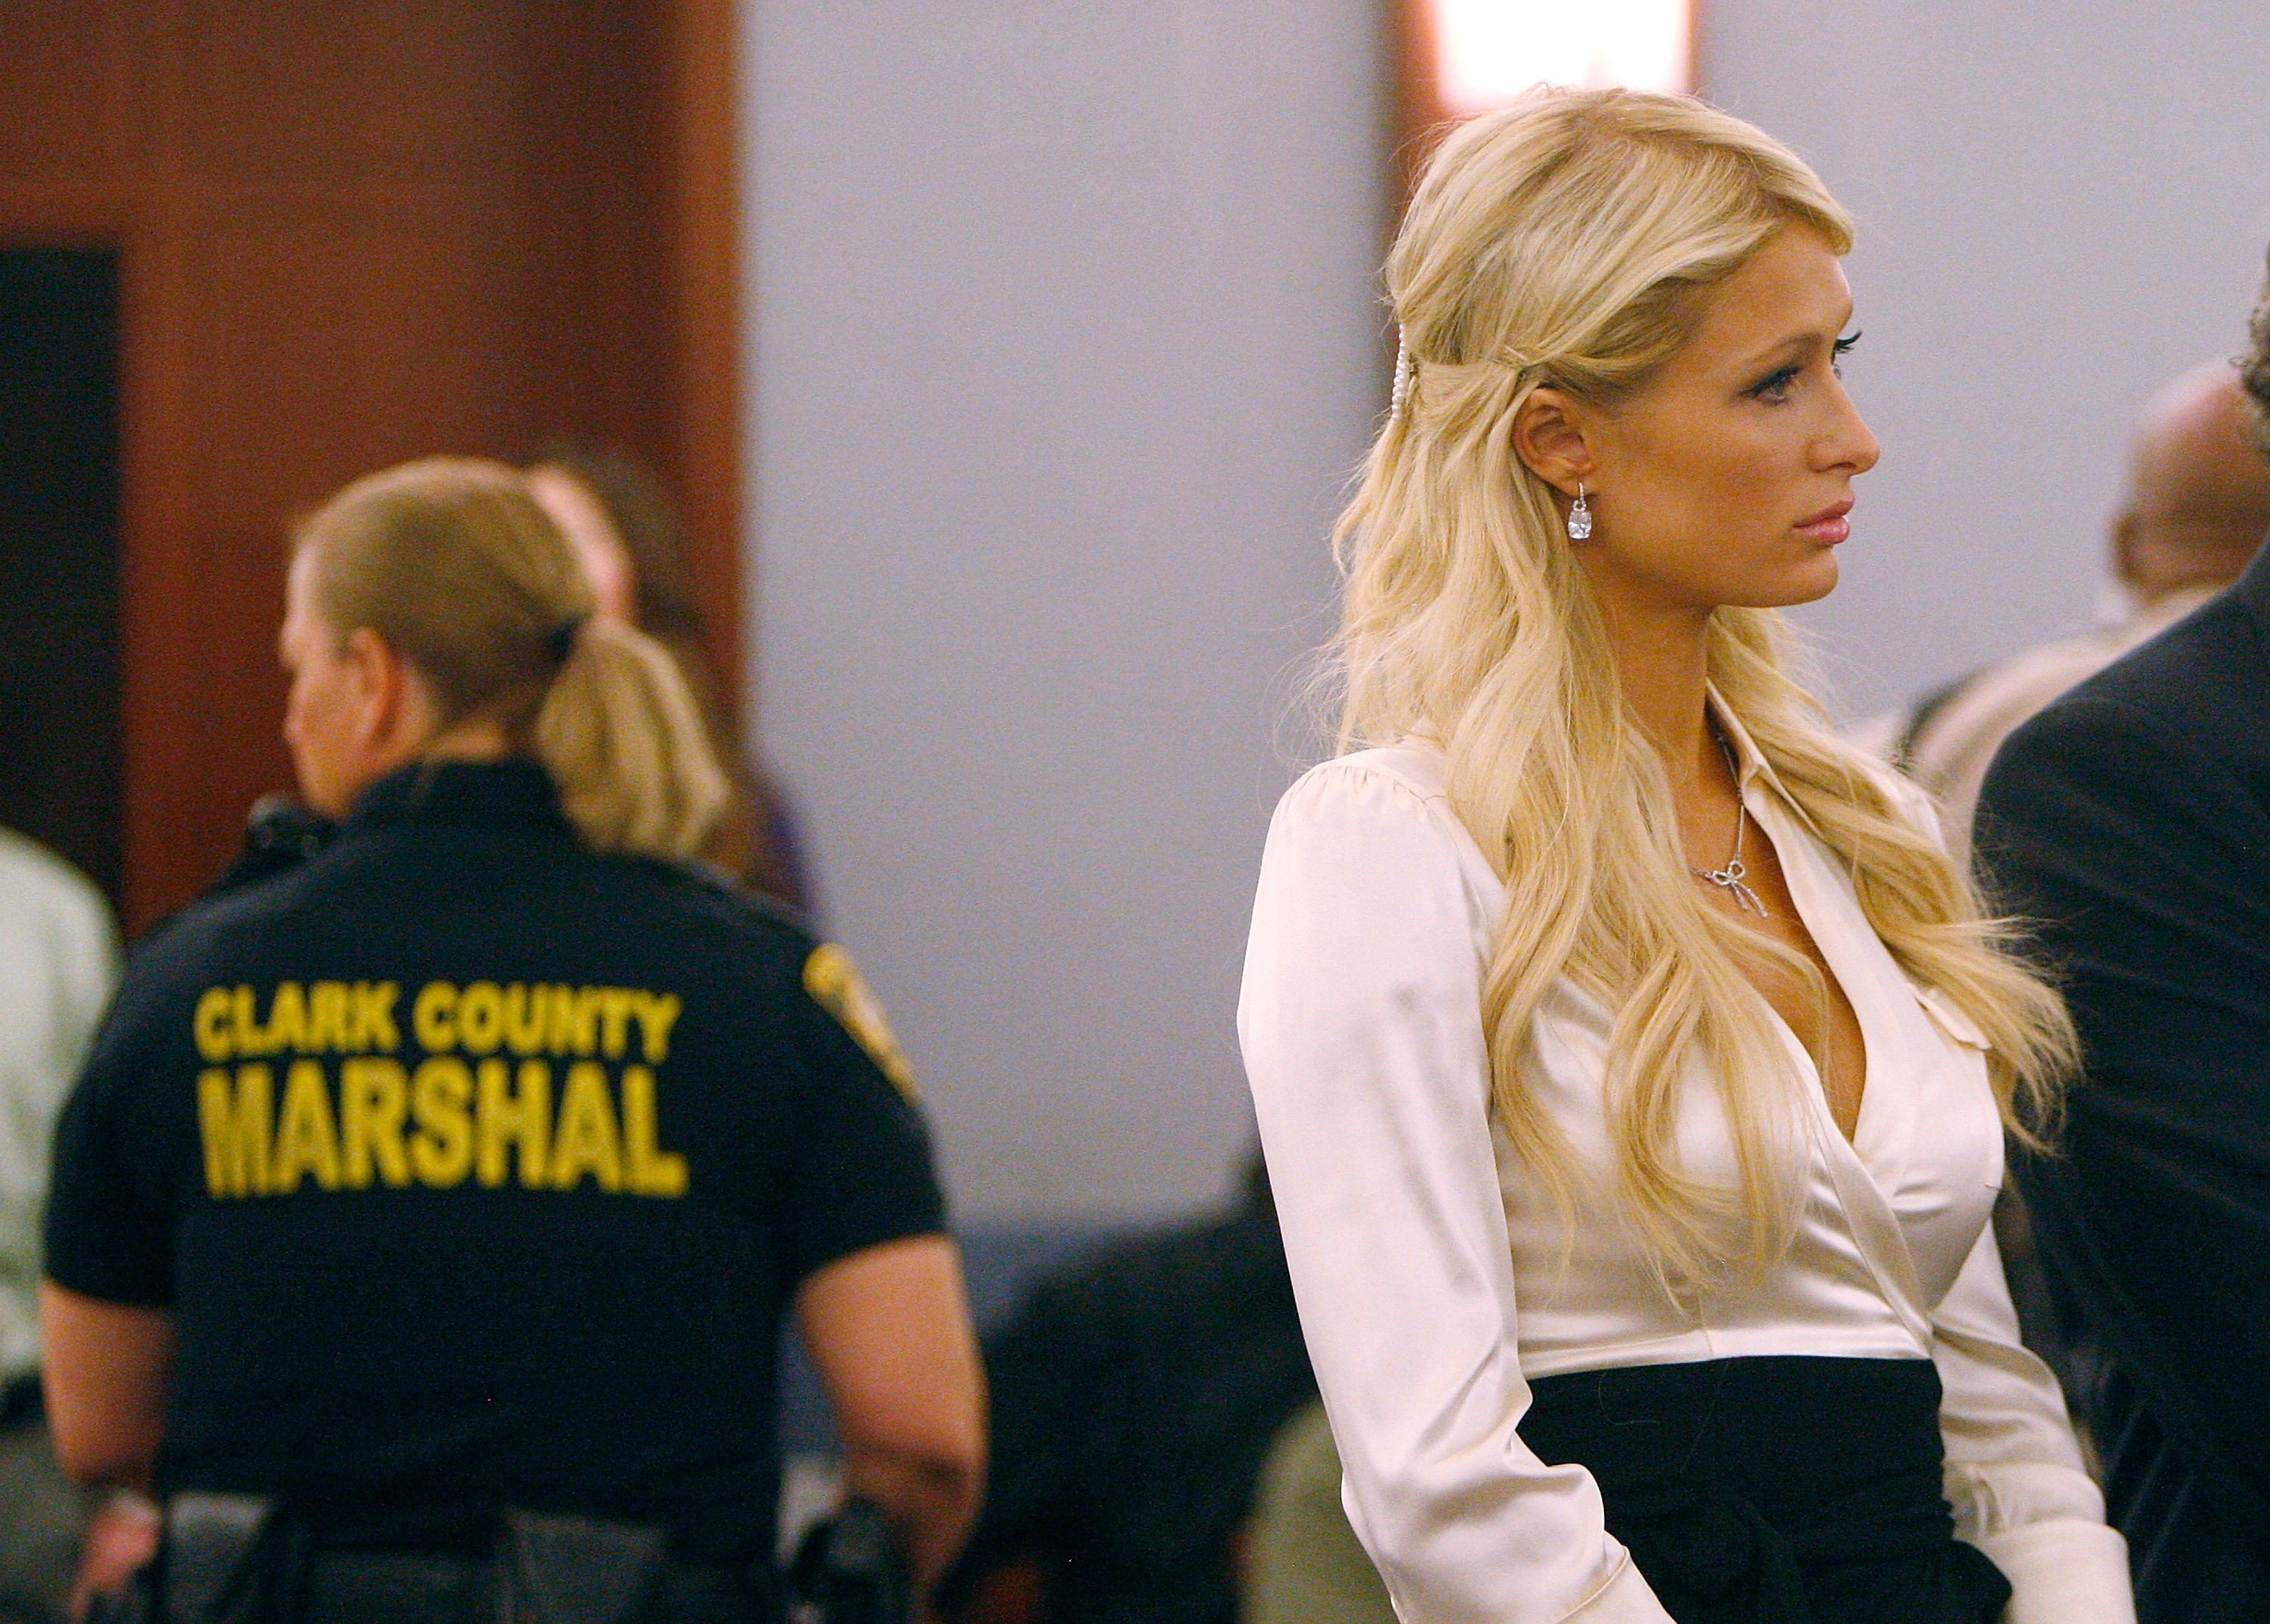 Paris Hilton appears in court for misdemeanor offences in Las Vegas, Nevada on September 10, 2010 | Photo: Getty Images